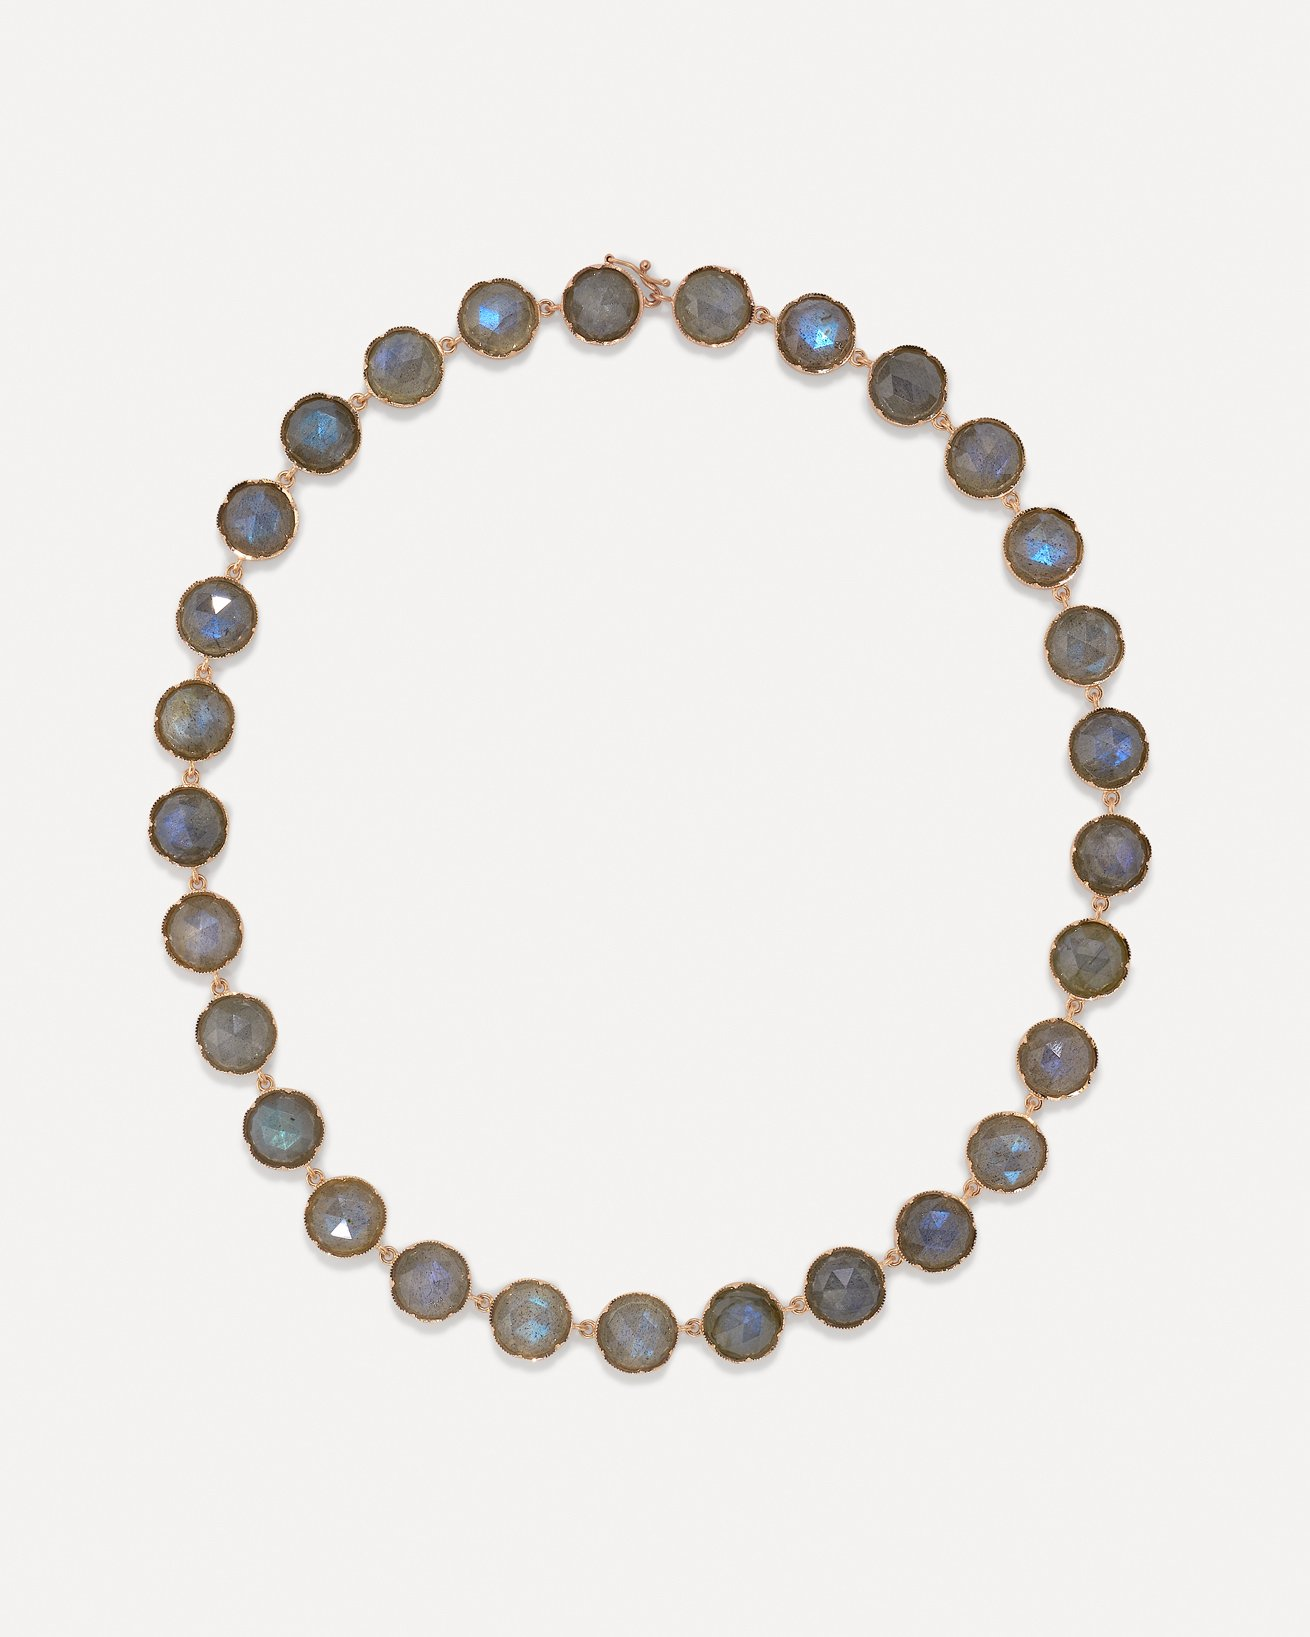 Irene Neuwirth Labradorite Necklace